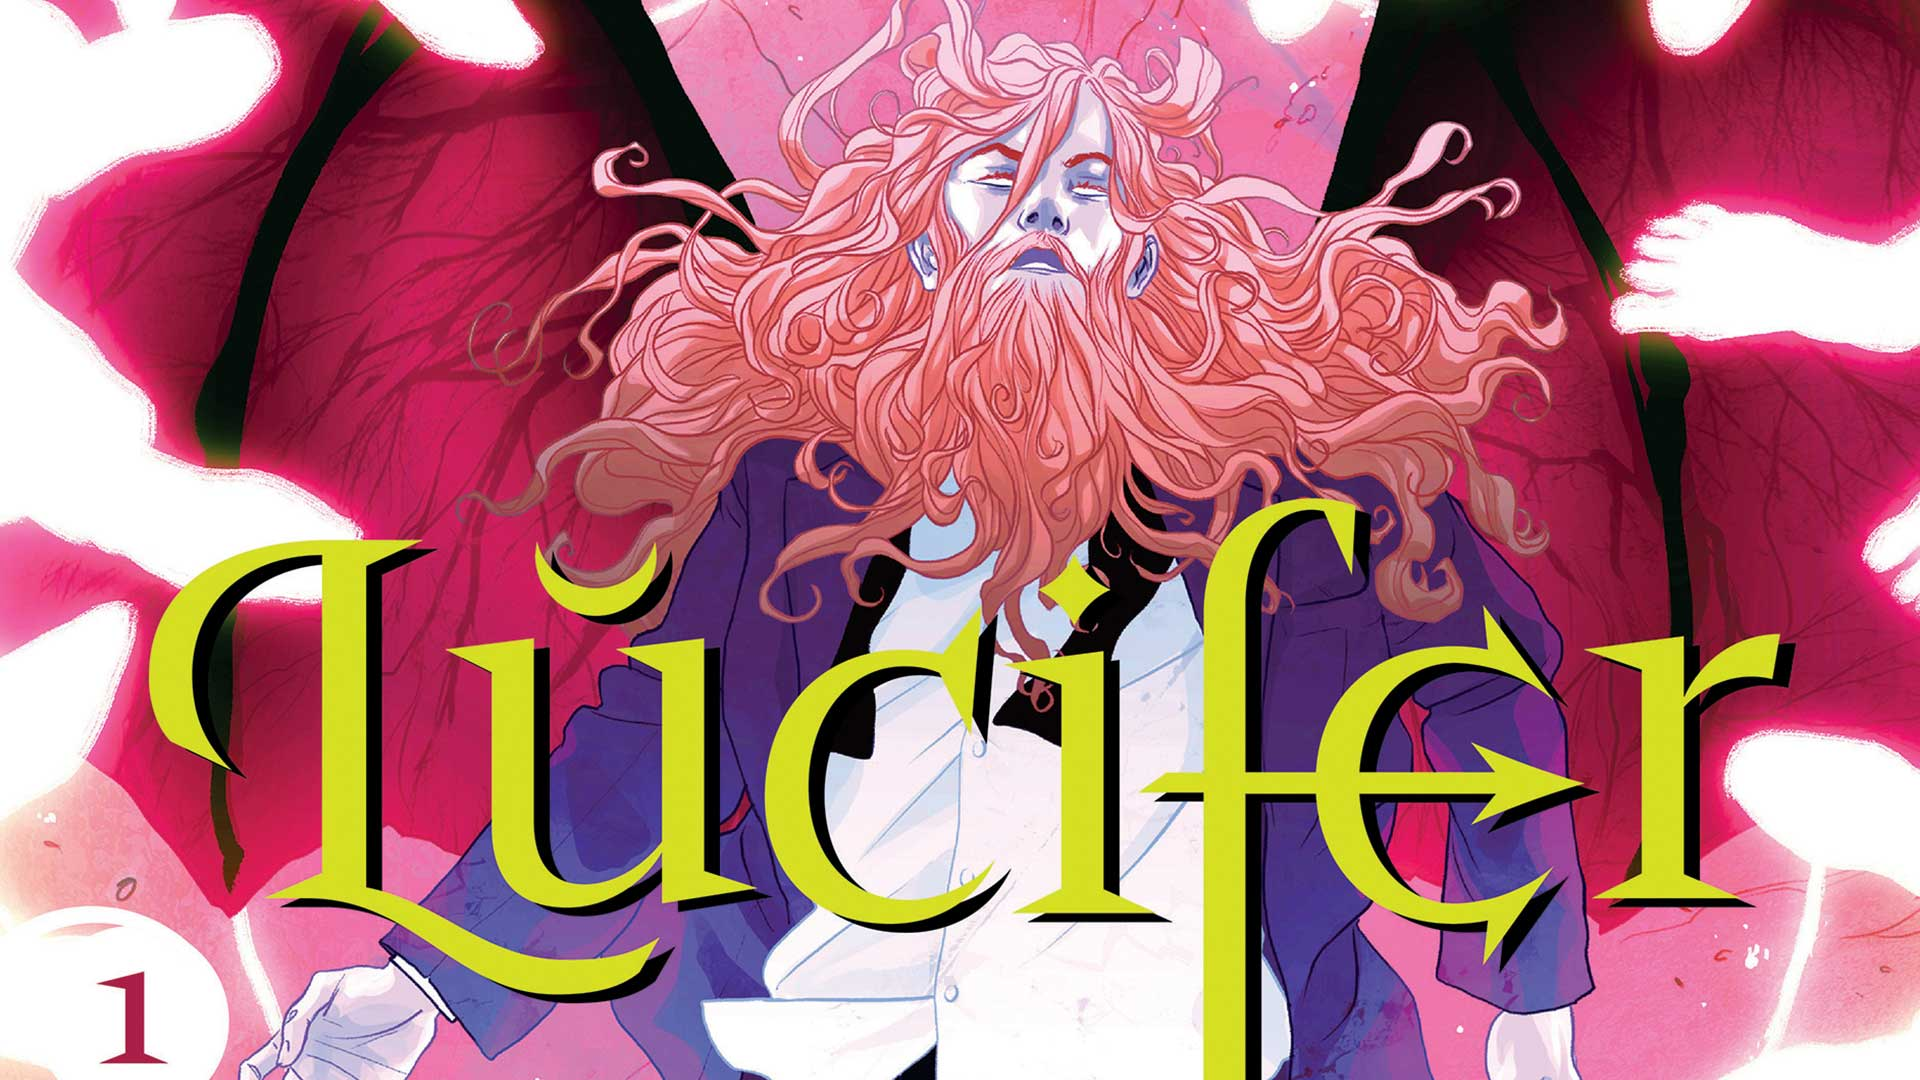 Lucifer #1 review: A picture of the Devil at rock bottom